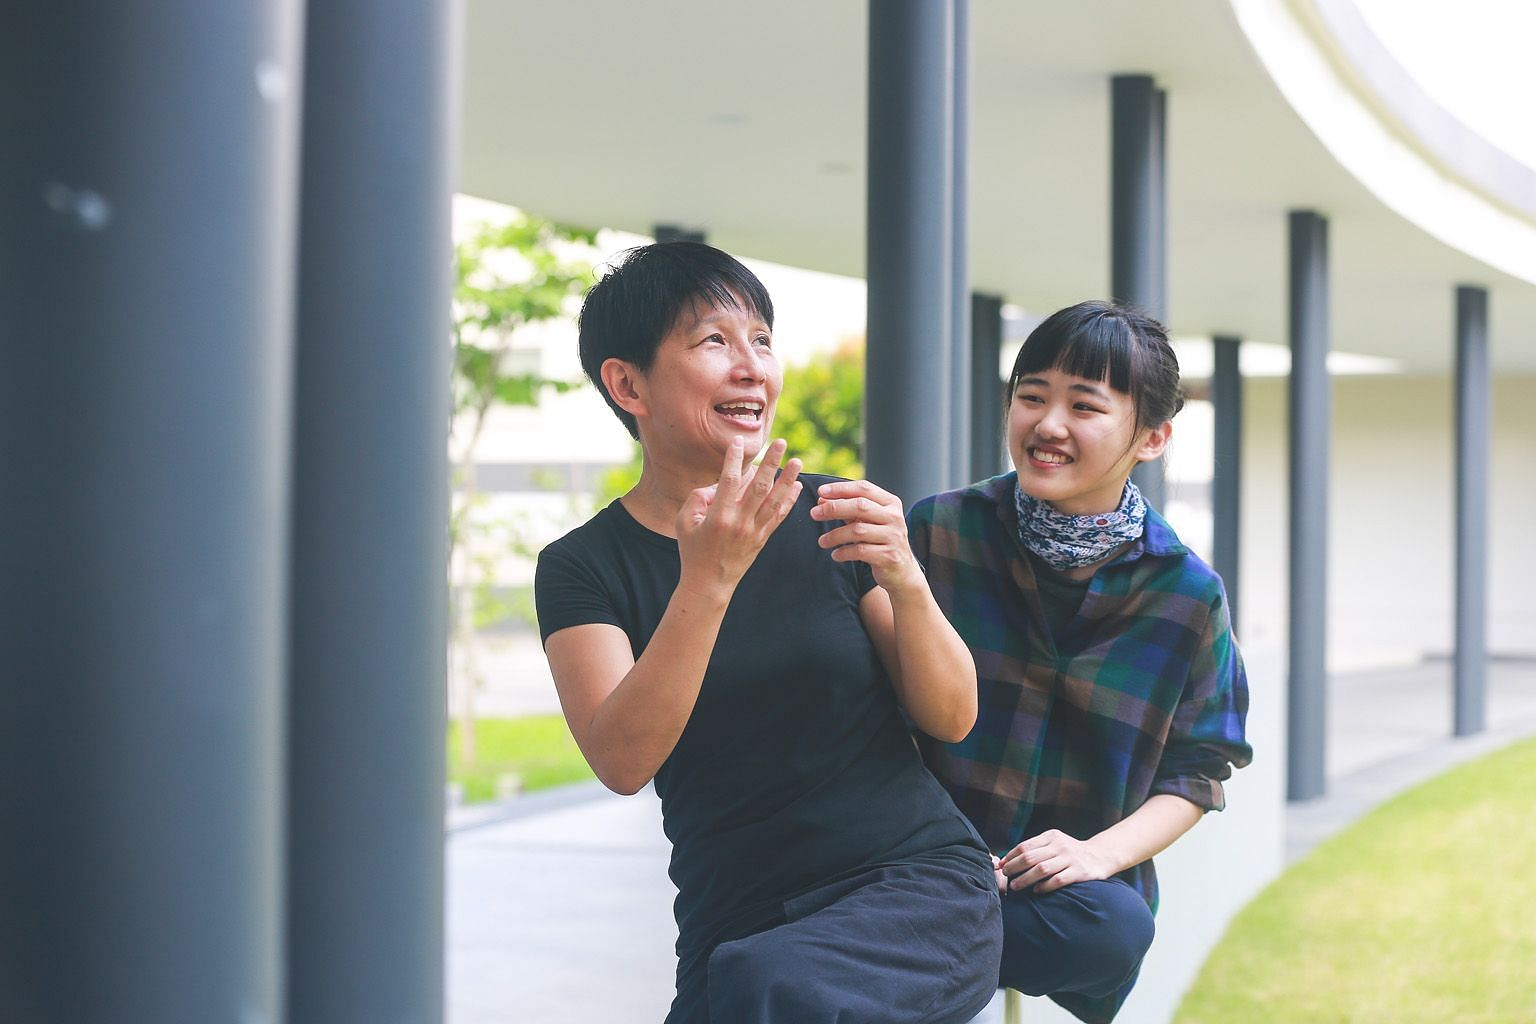 Veteran theatre performer Ang Gey Pin (top, left) and her former student Ranice Tay (top, right) will collaborate in Dreamtalk (above), a physical theatre piece where a guardian watches over a young dreamer.